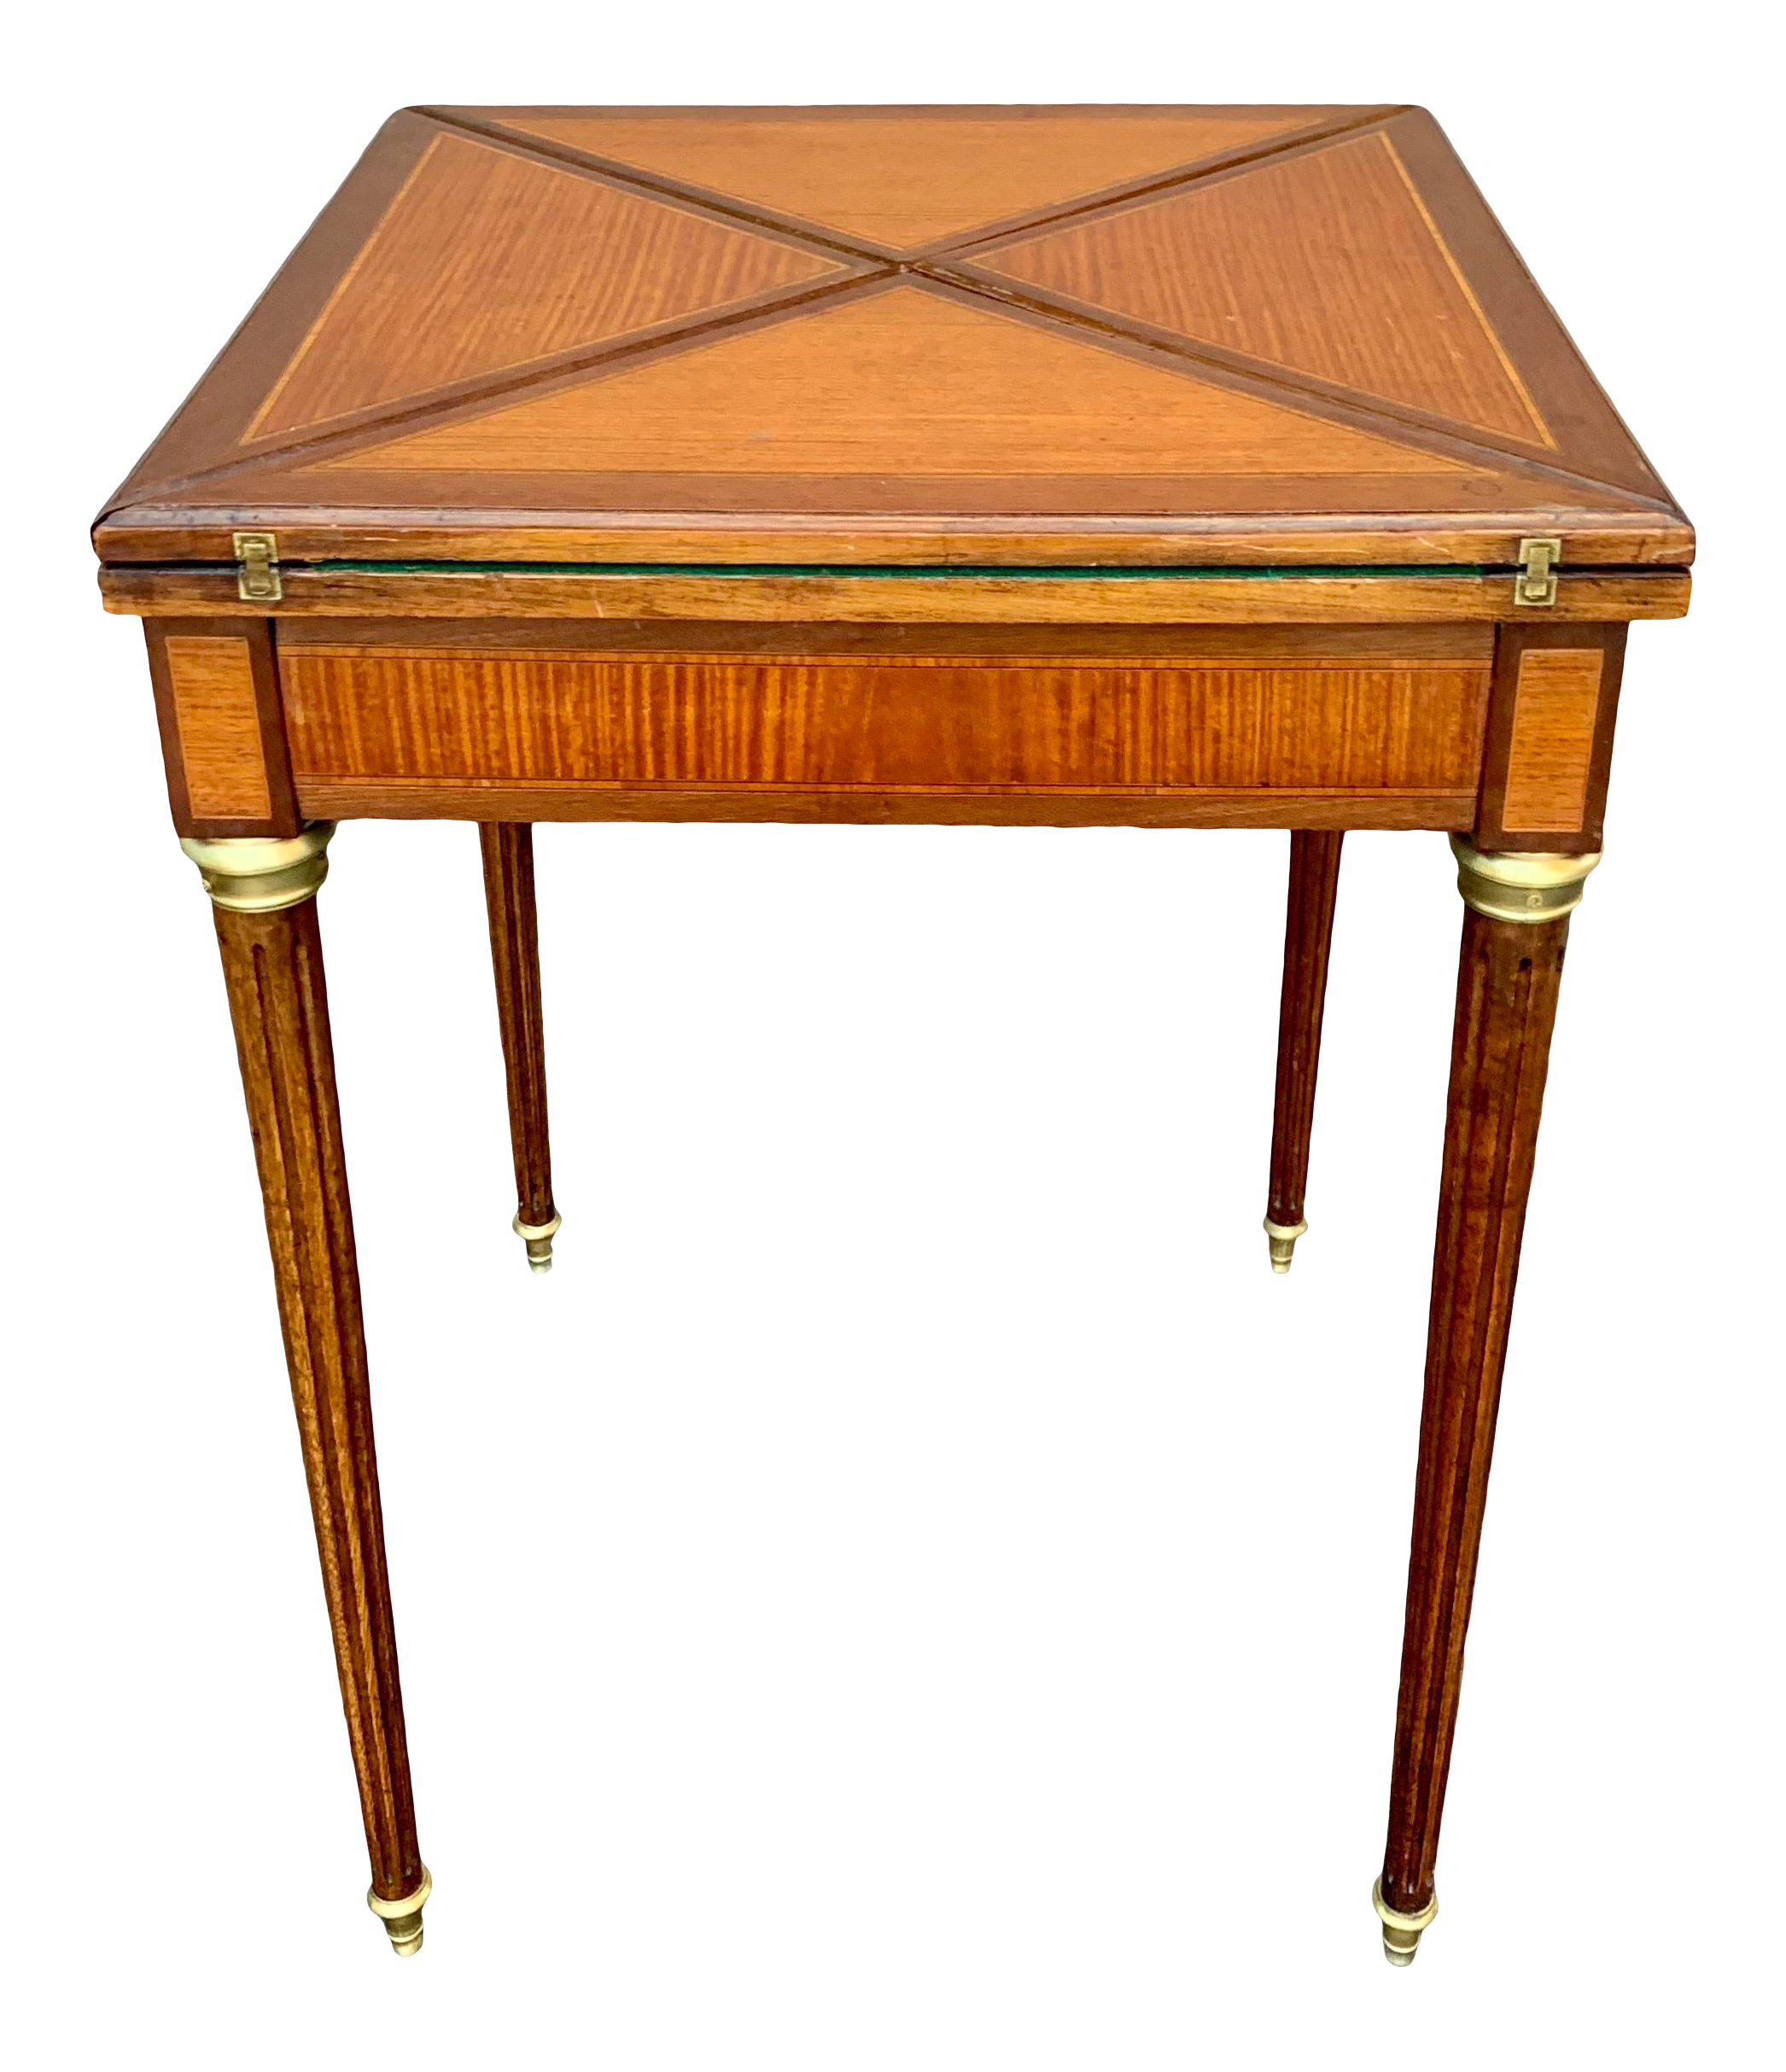 19th Century French Envelope Folding Card Table In The Manor Of Paul Sormani In 2020 Table Cards Table Table Games